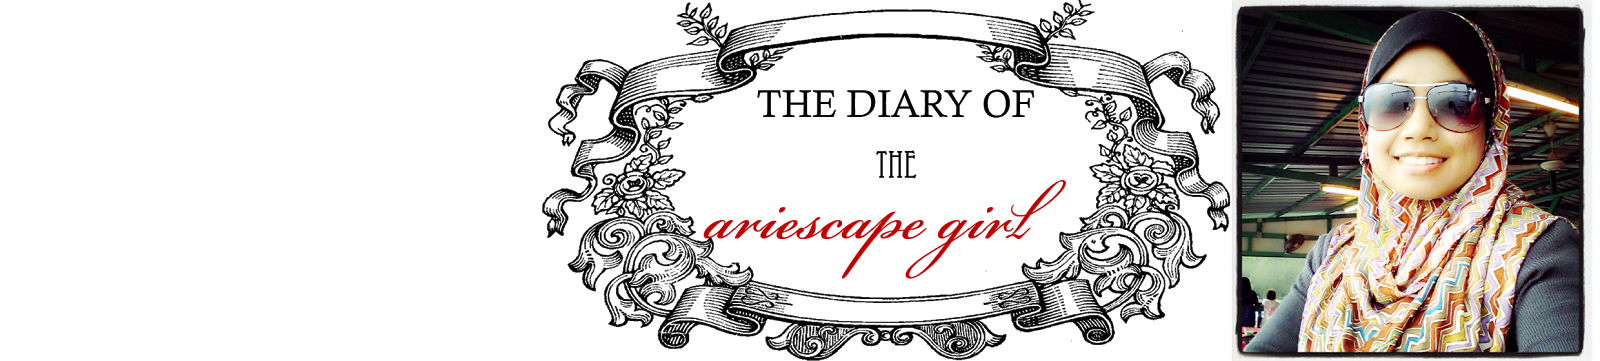 the diary of the ariescape girl